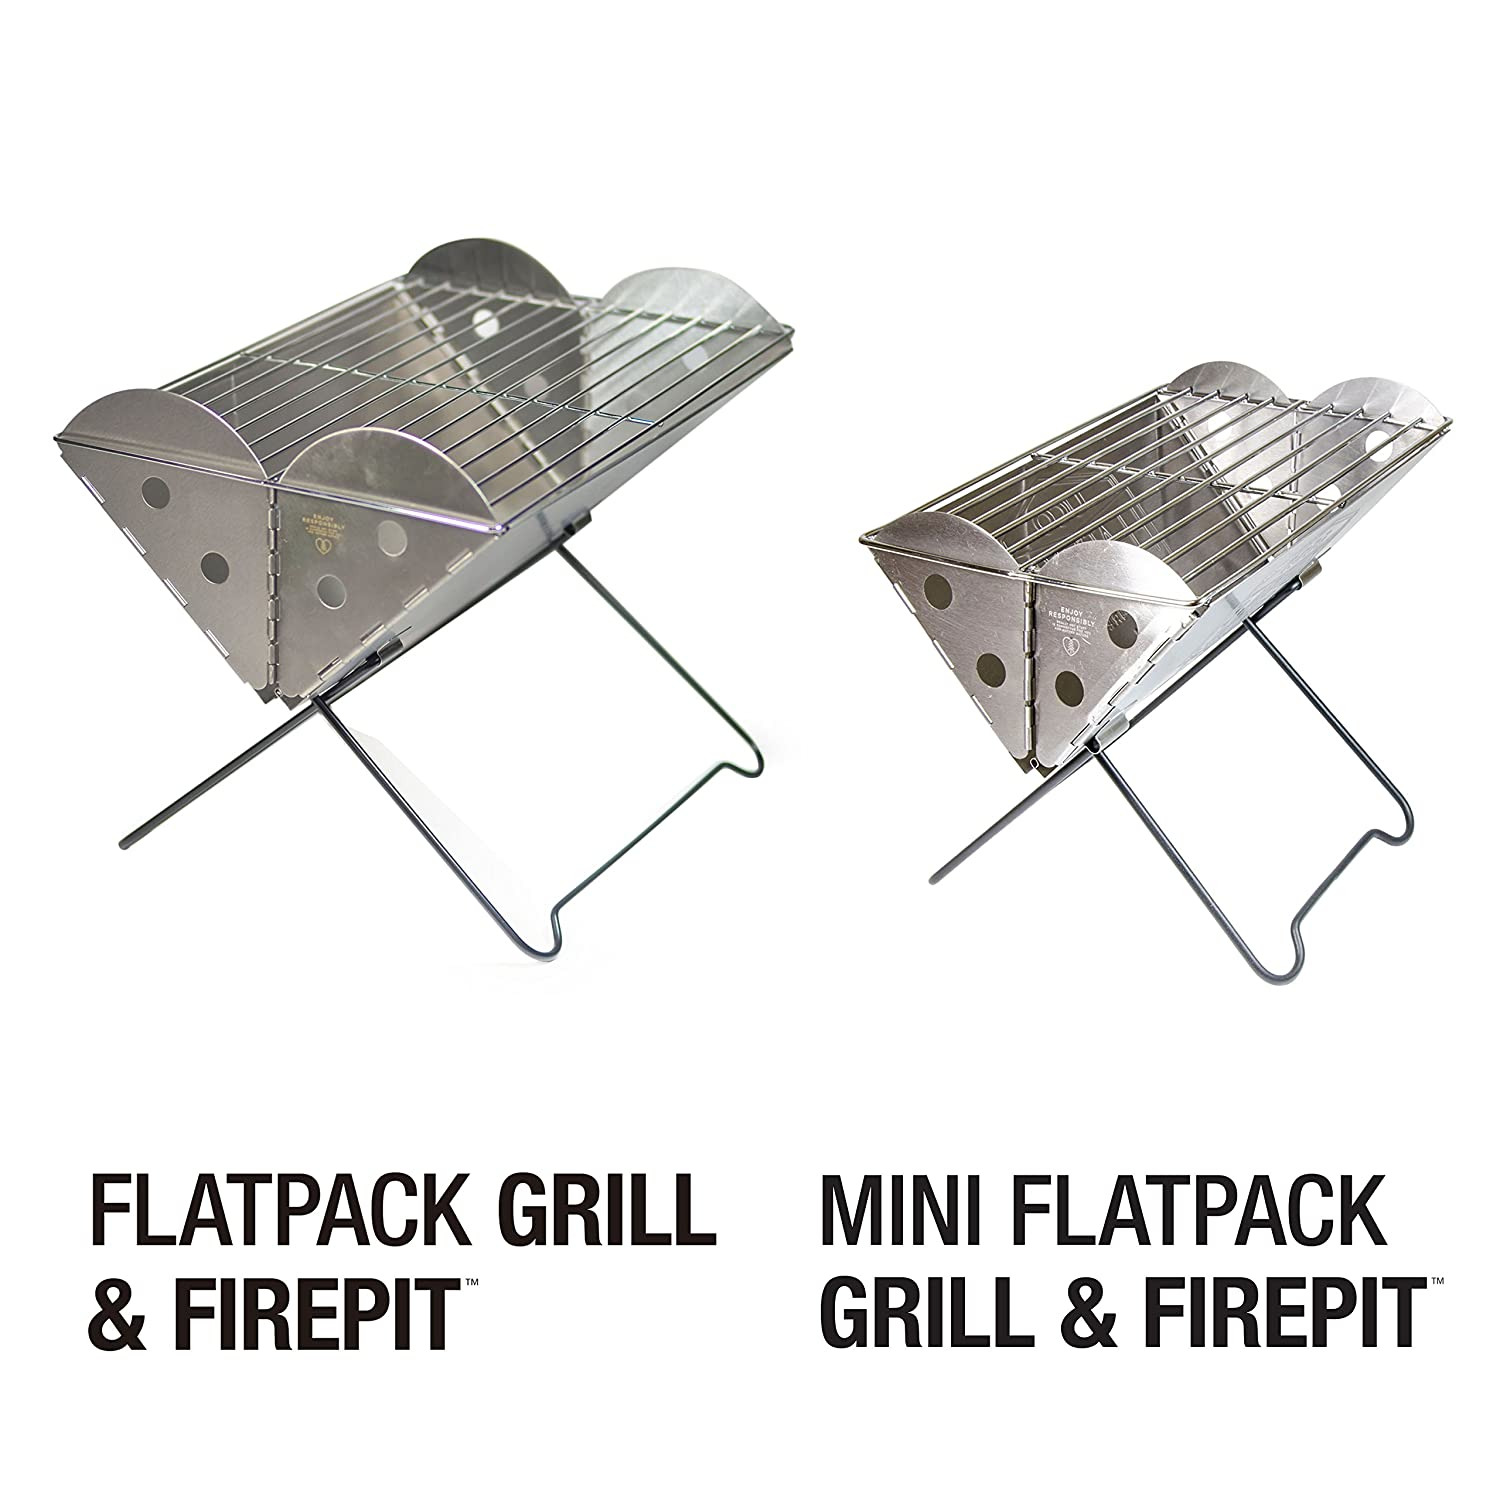 Flat Pack Outdoor Kitchens Amazoncom Uco Flatpack Mini Portable Stainless Steel Grill And